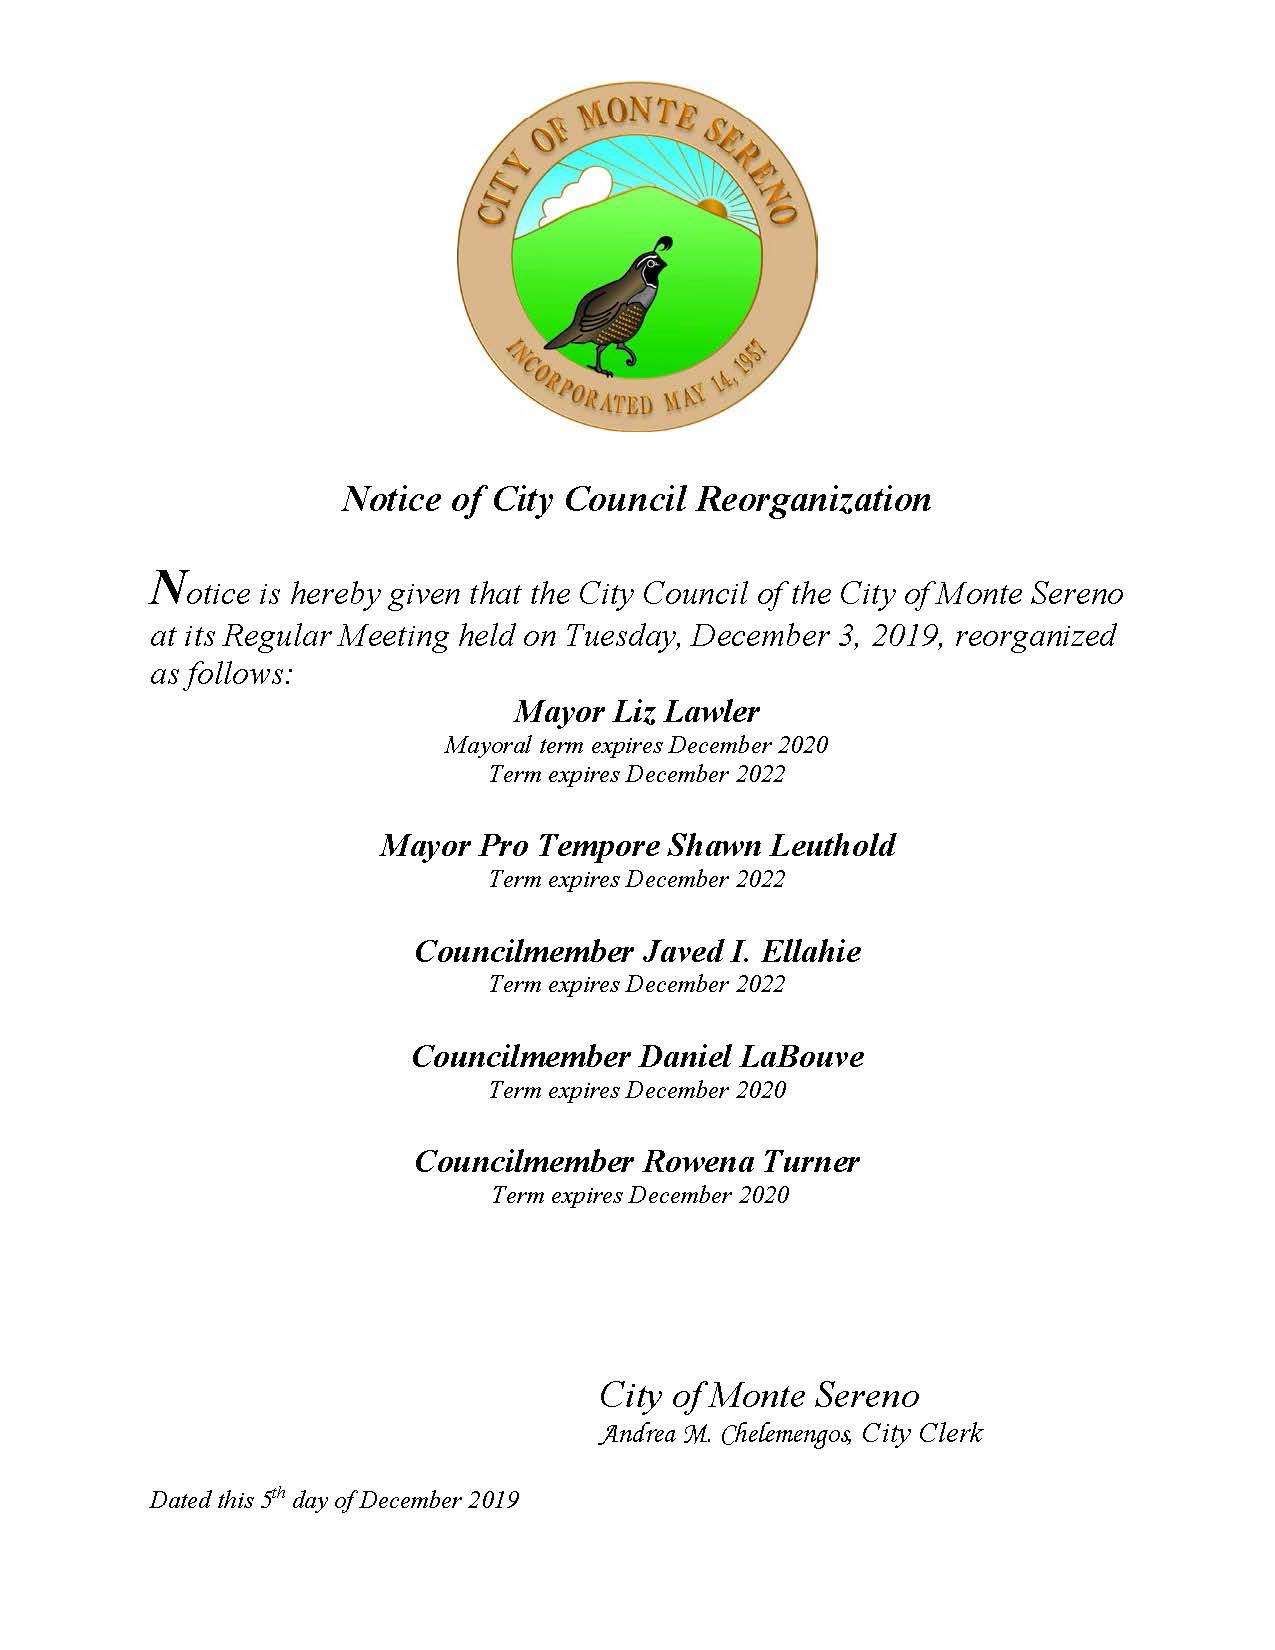 Monte Sereno City Council Reorganization December 2019